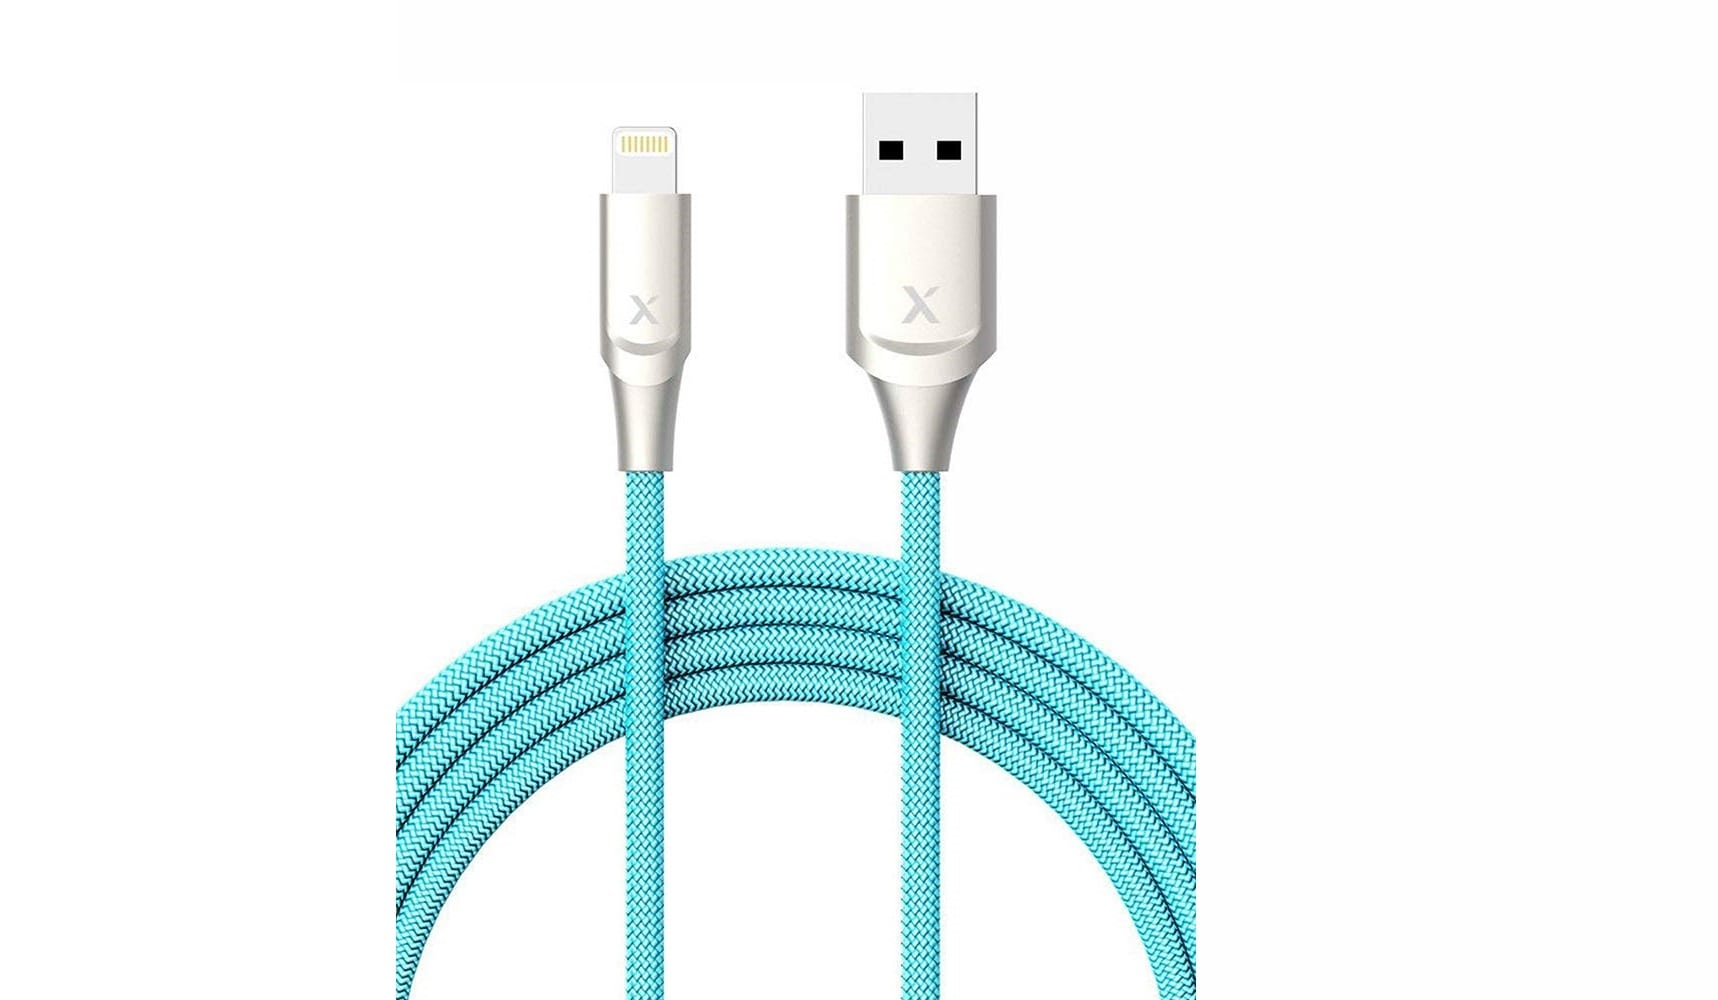 Xcentz iPhone Charger 6ft, Apple MFi Certified Lightning Cable iPhone Charger Cable-min